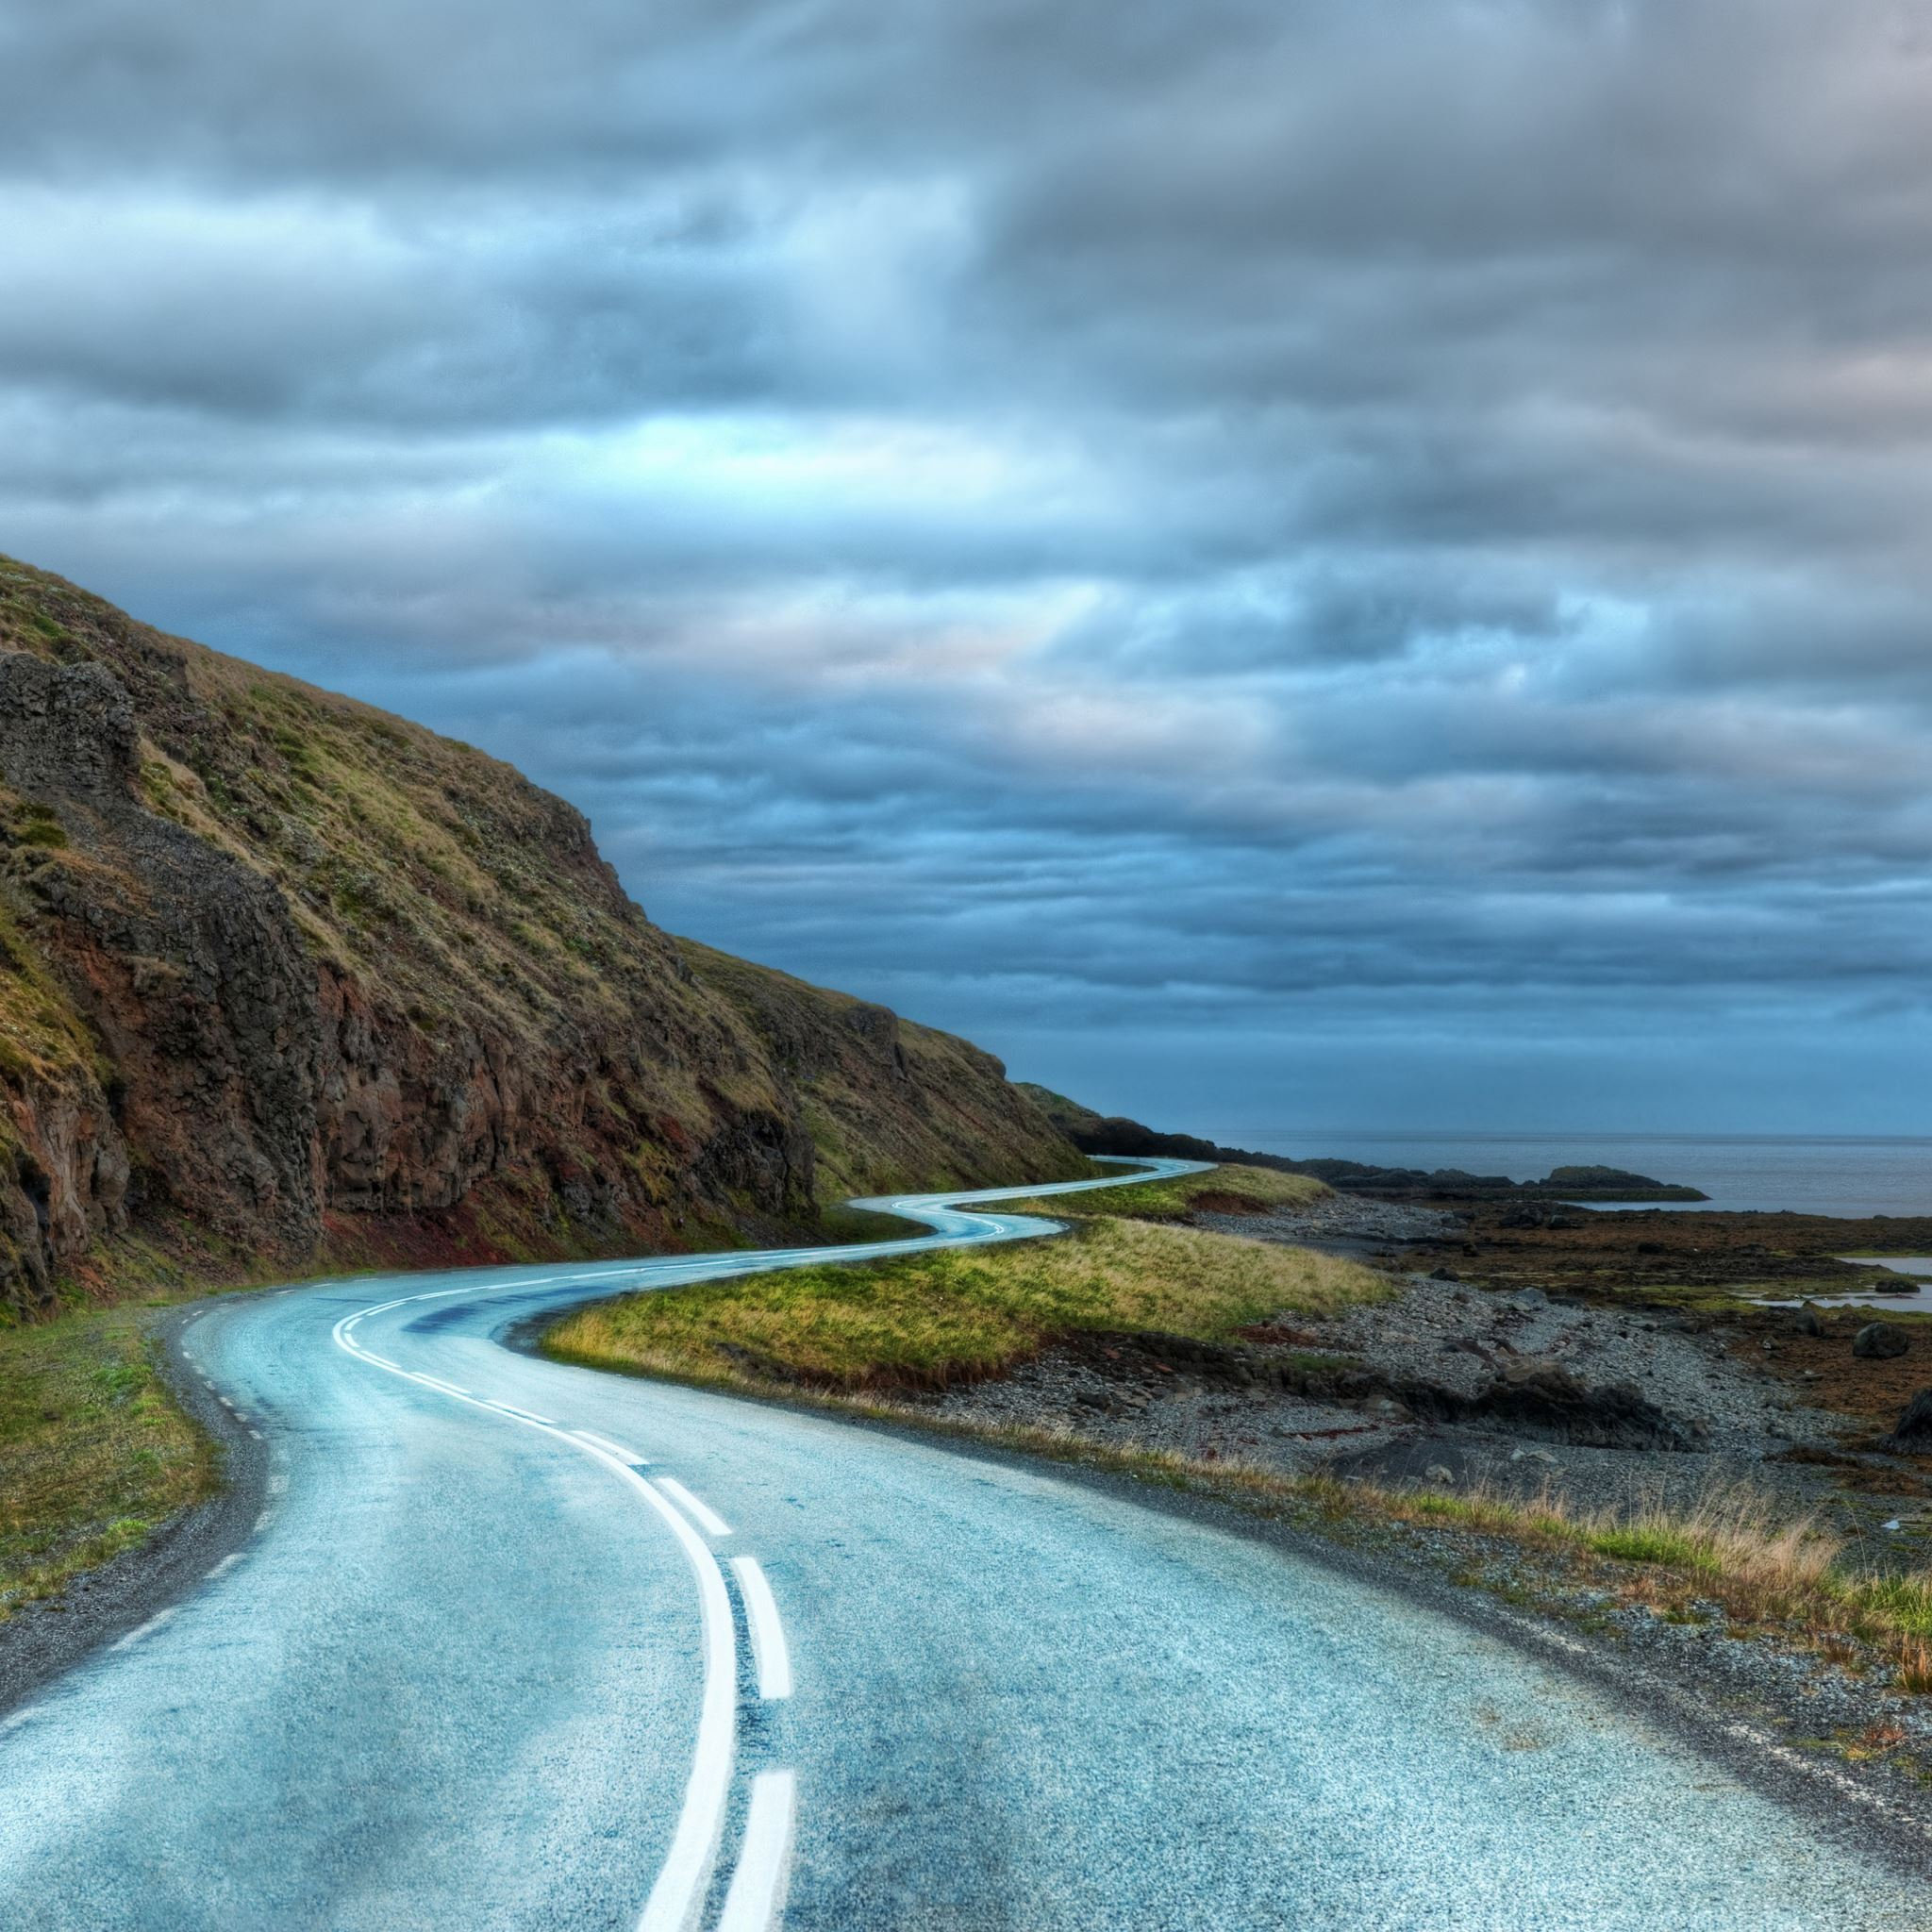 Curvy road around iceland iPad Air wallpaper